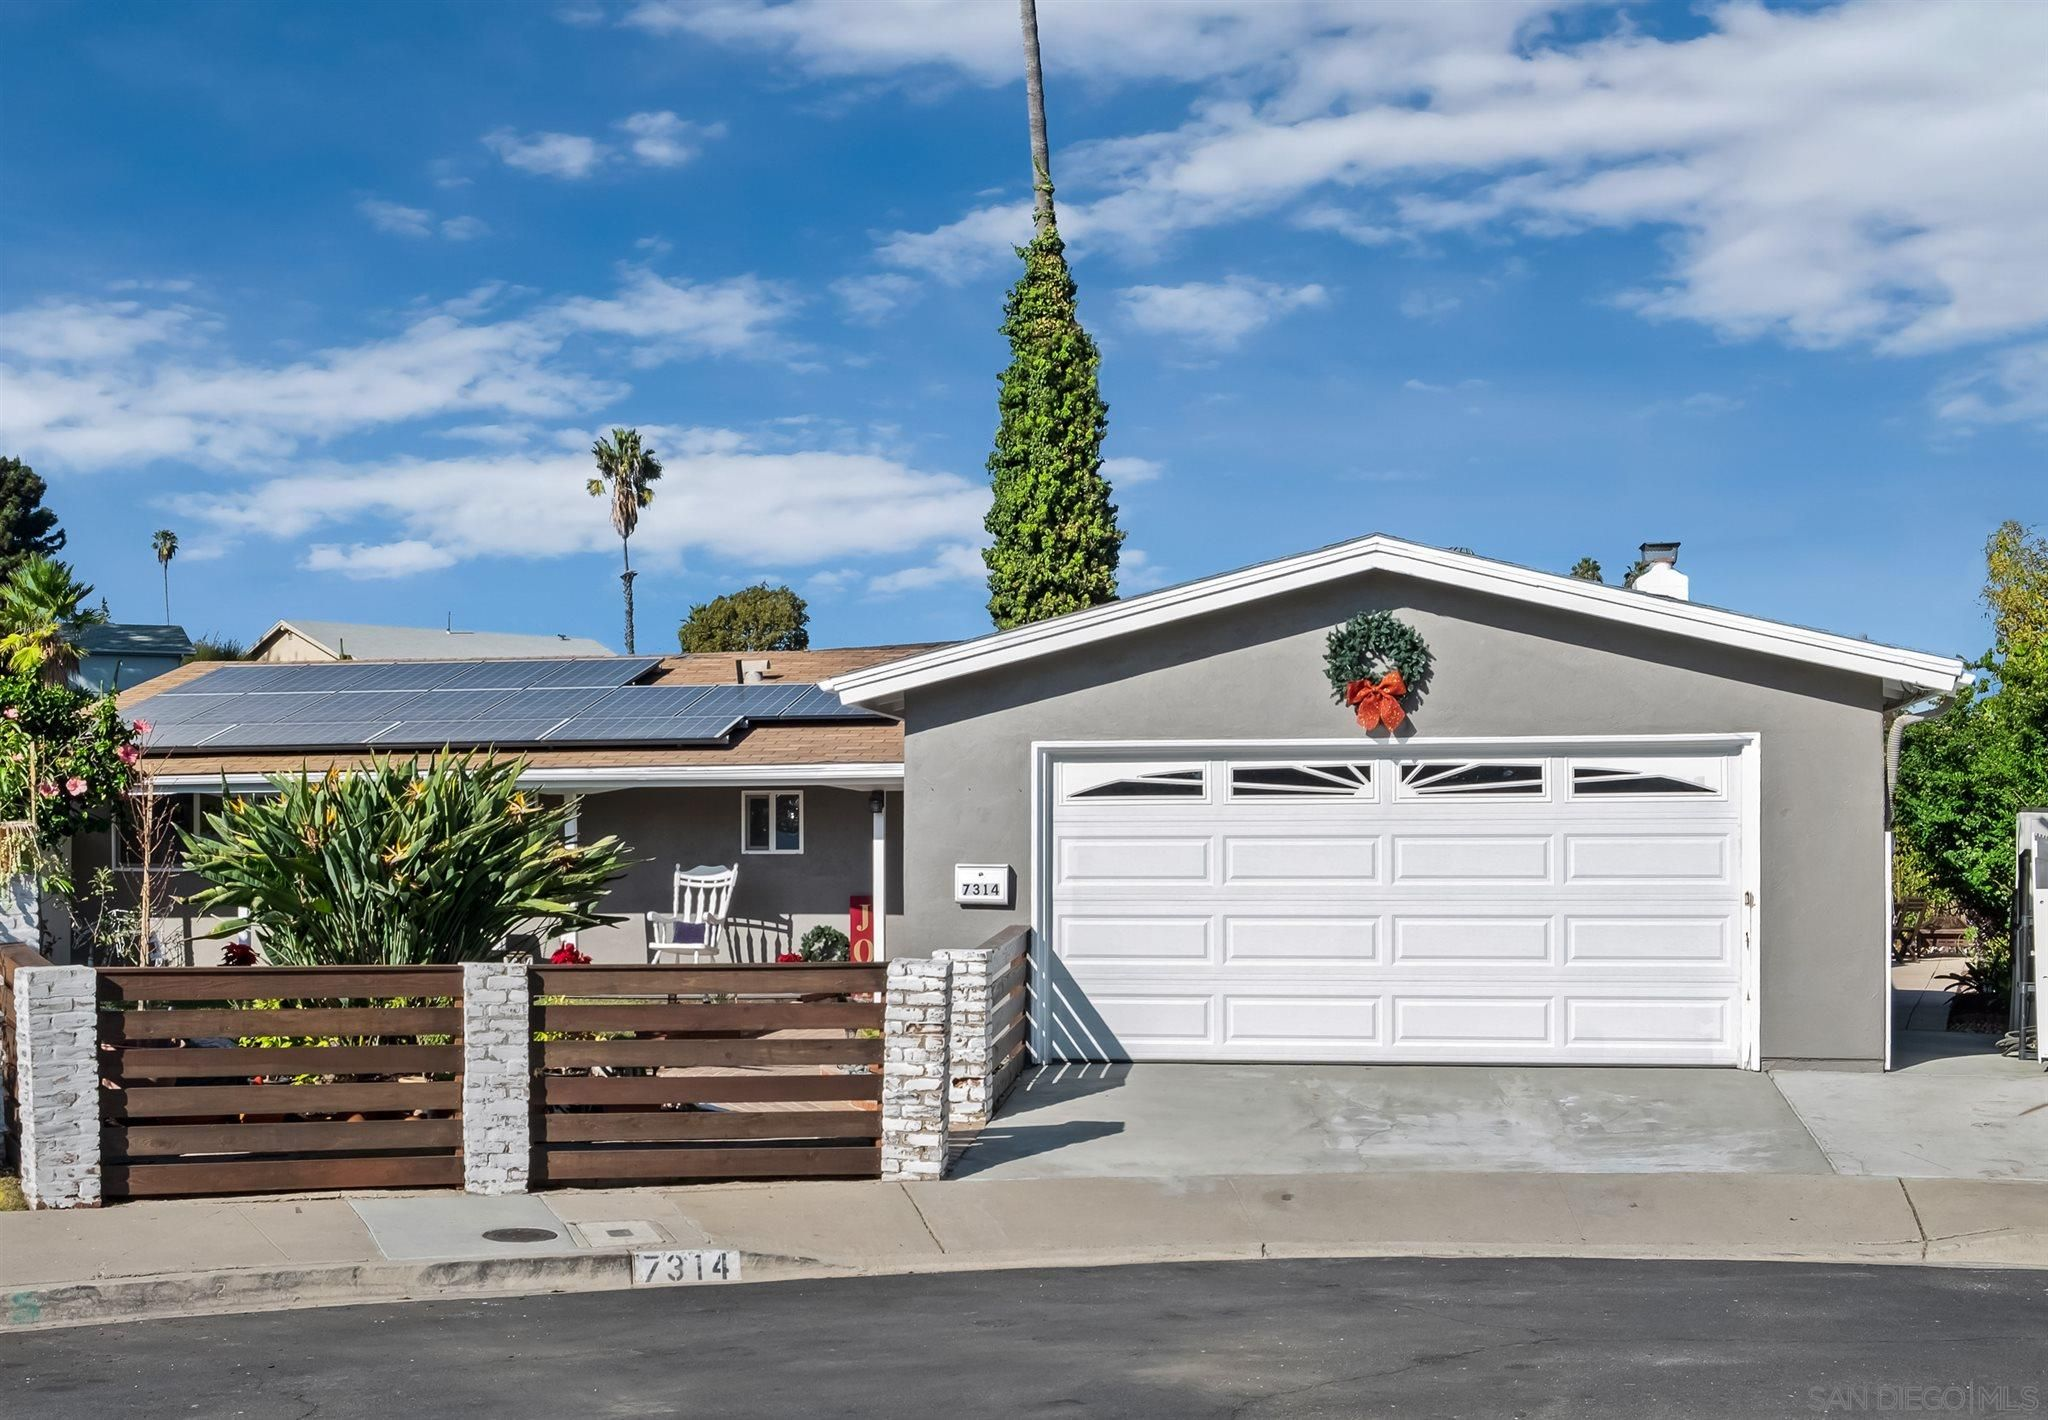 Main Photo: House for sale : 4 bedrooms : 7314 Linbrook in San Diego